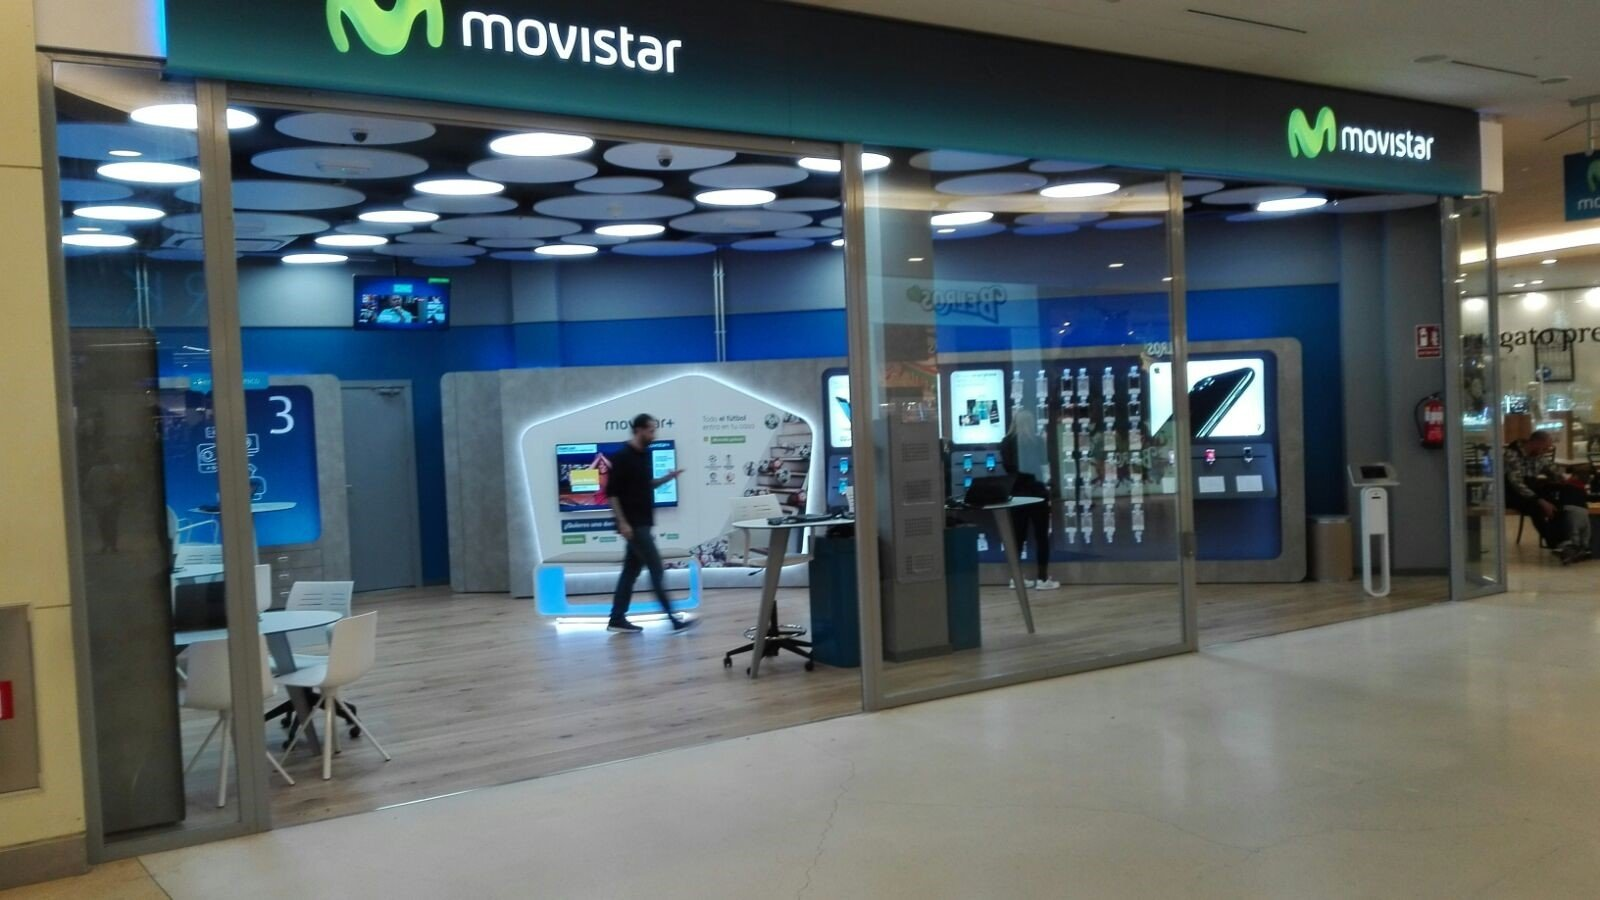 Reformas integrales de tiendas movistar en madrid y valencia for Movistar oficinas